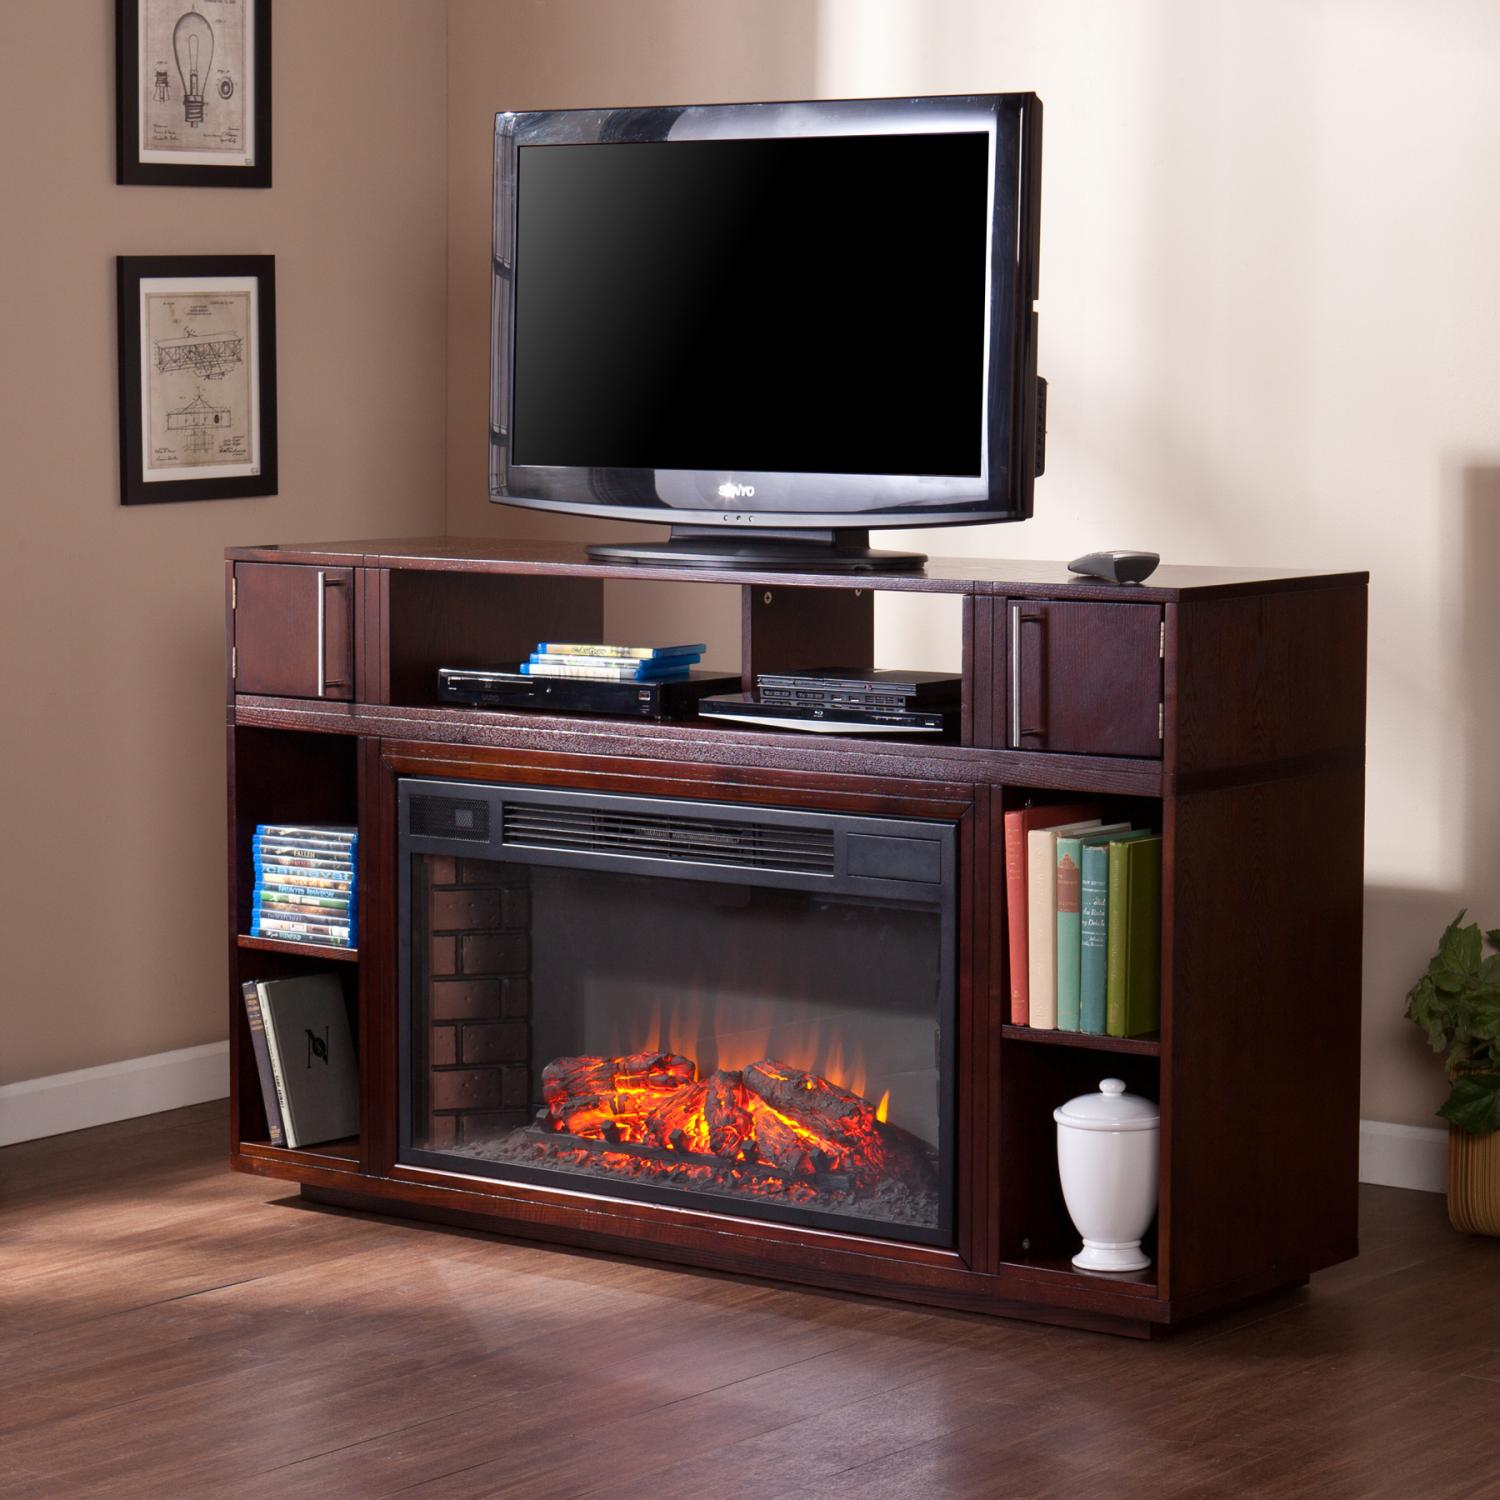 burnished corinth media walnut rm entertainment corner center fireplace and electric wall